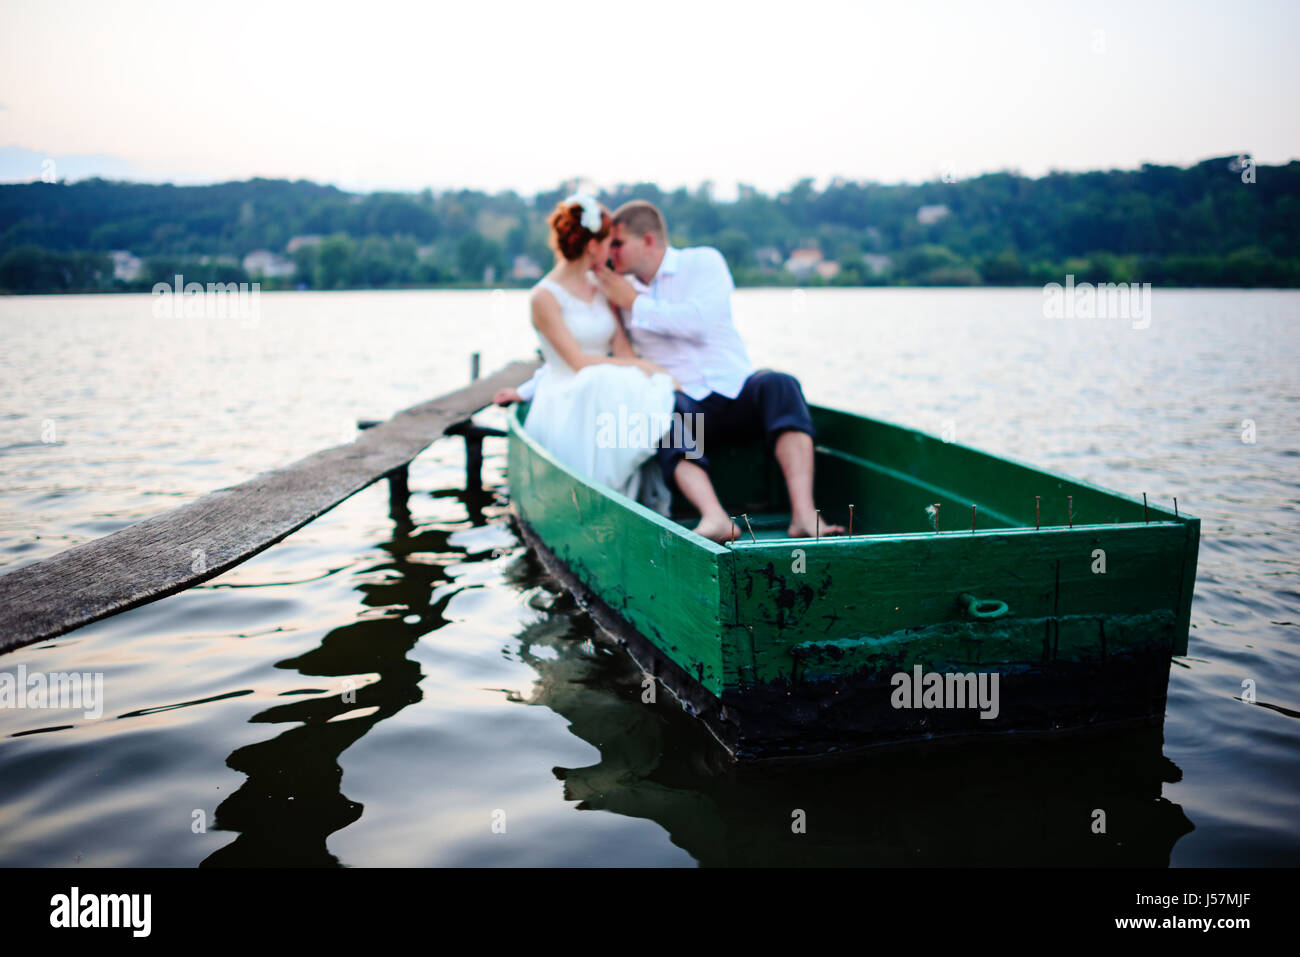 Young couple in love on sail boat having fun with tablet - Happy luxury lifestyle on yacht sailboat - Always connected - Stock Image